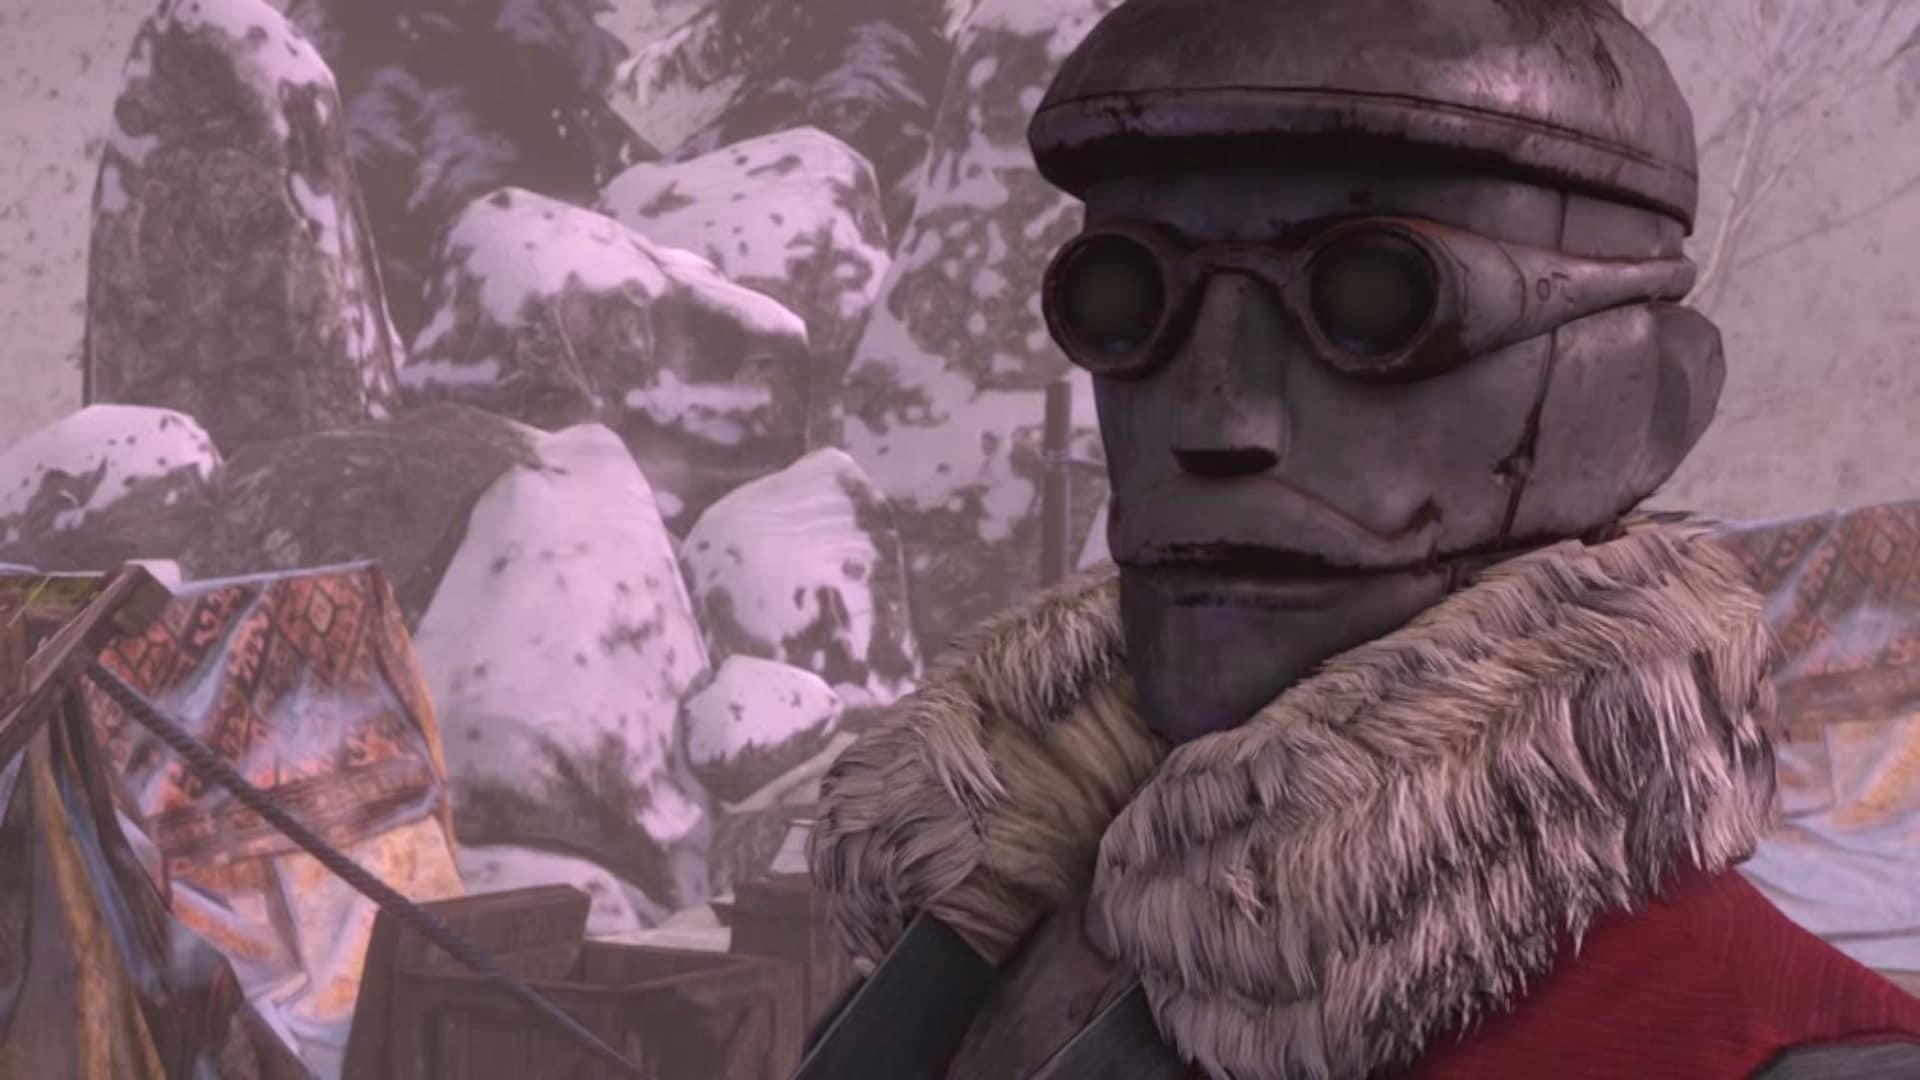 Syberia 3 - An Automaton with a plan Steam Key GLOBAL - 3